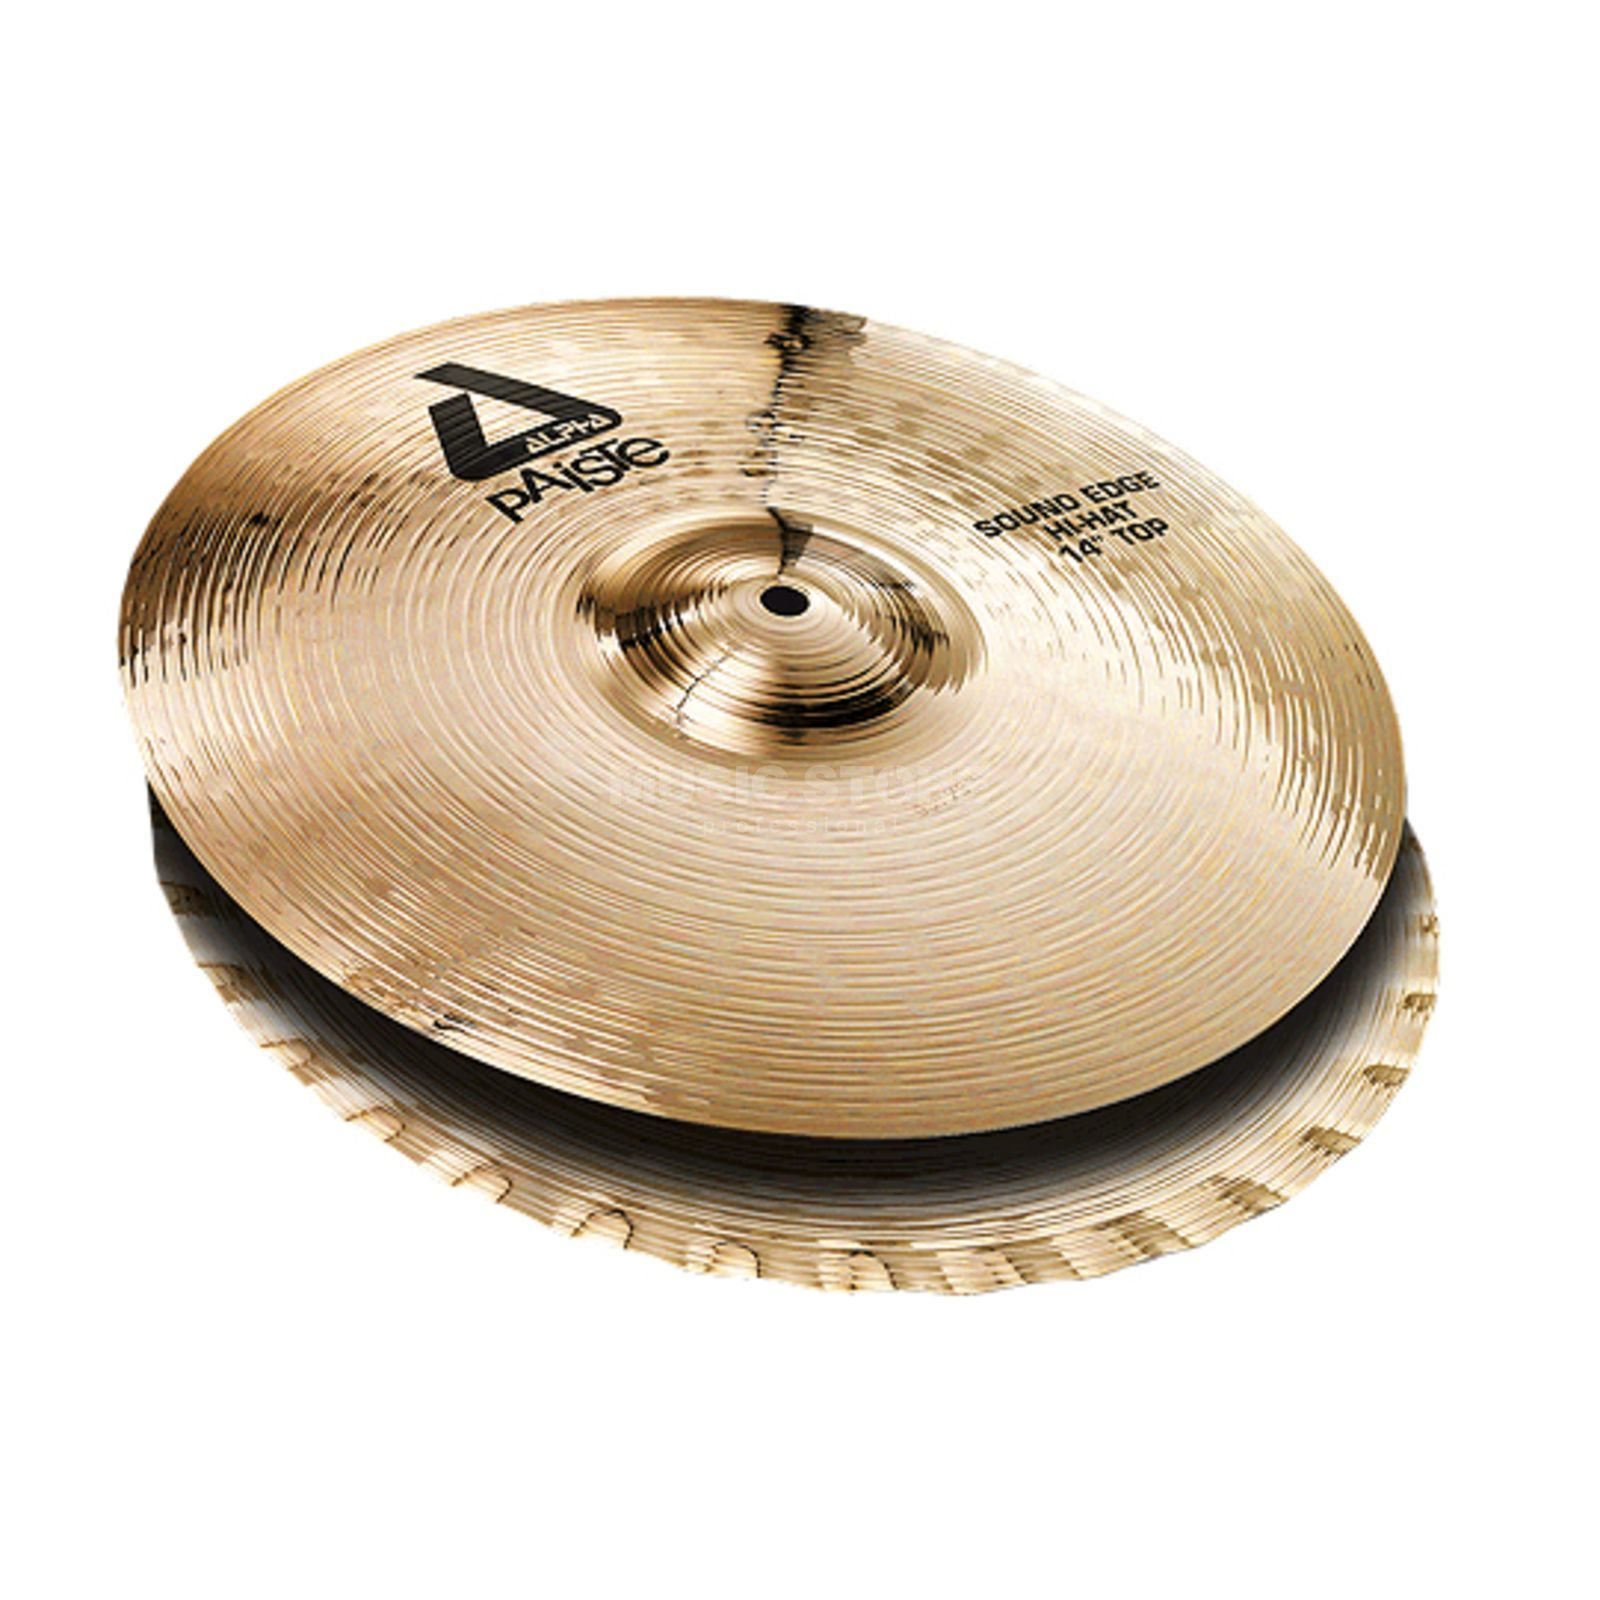 "Paiste Alpha Sound Edge HiHat 14"", Brilliant Изображение товара"